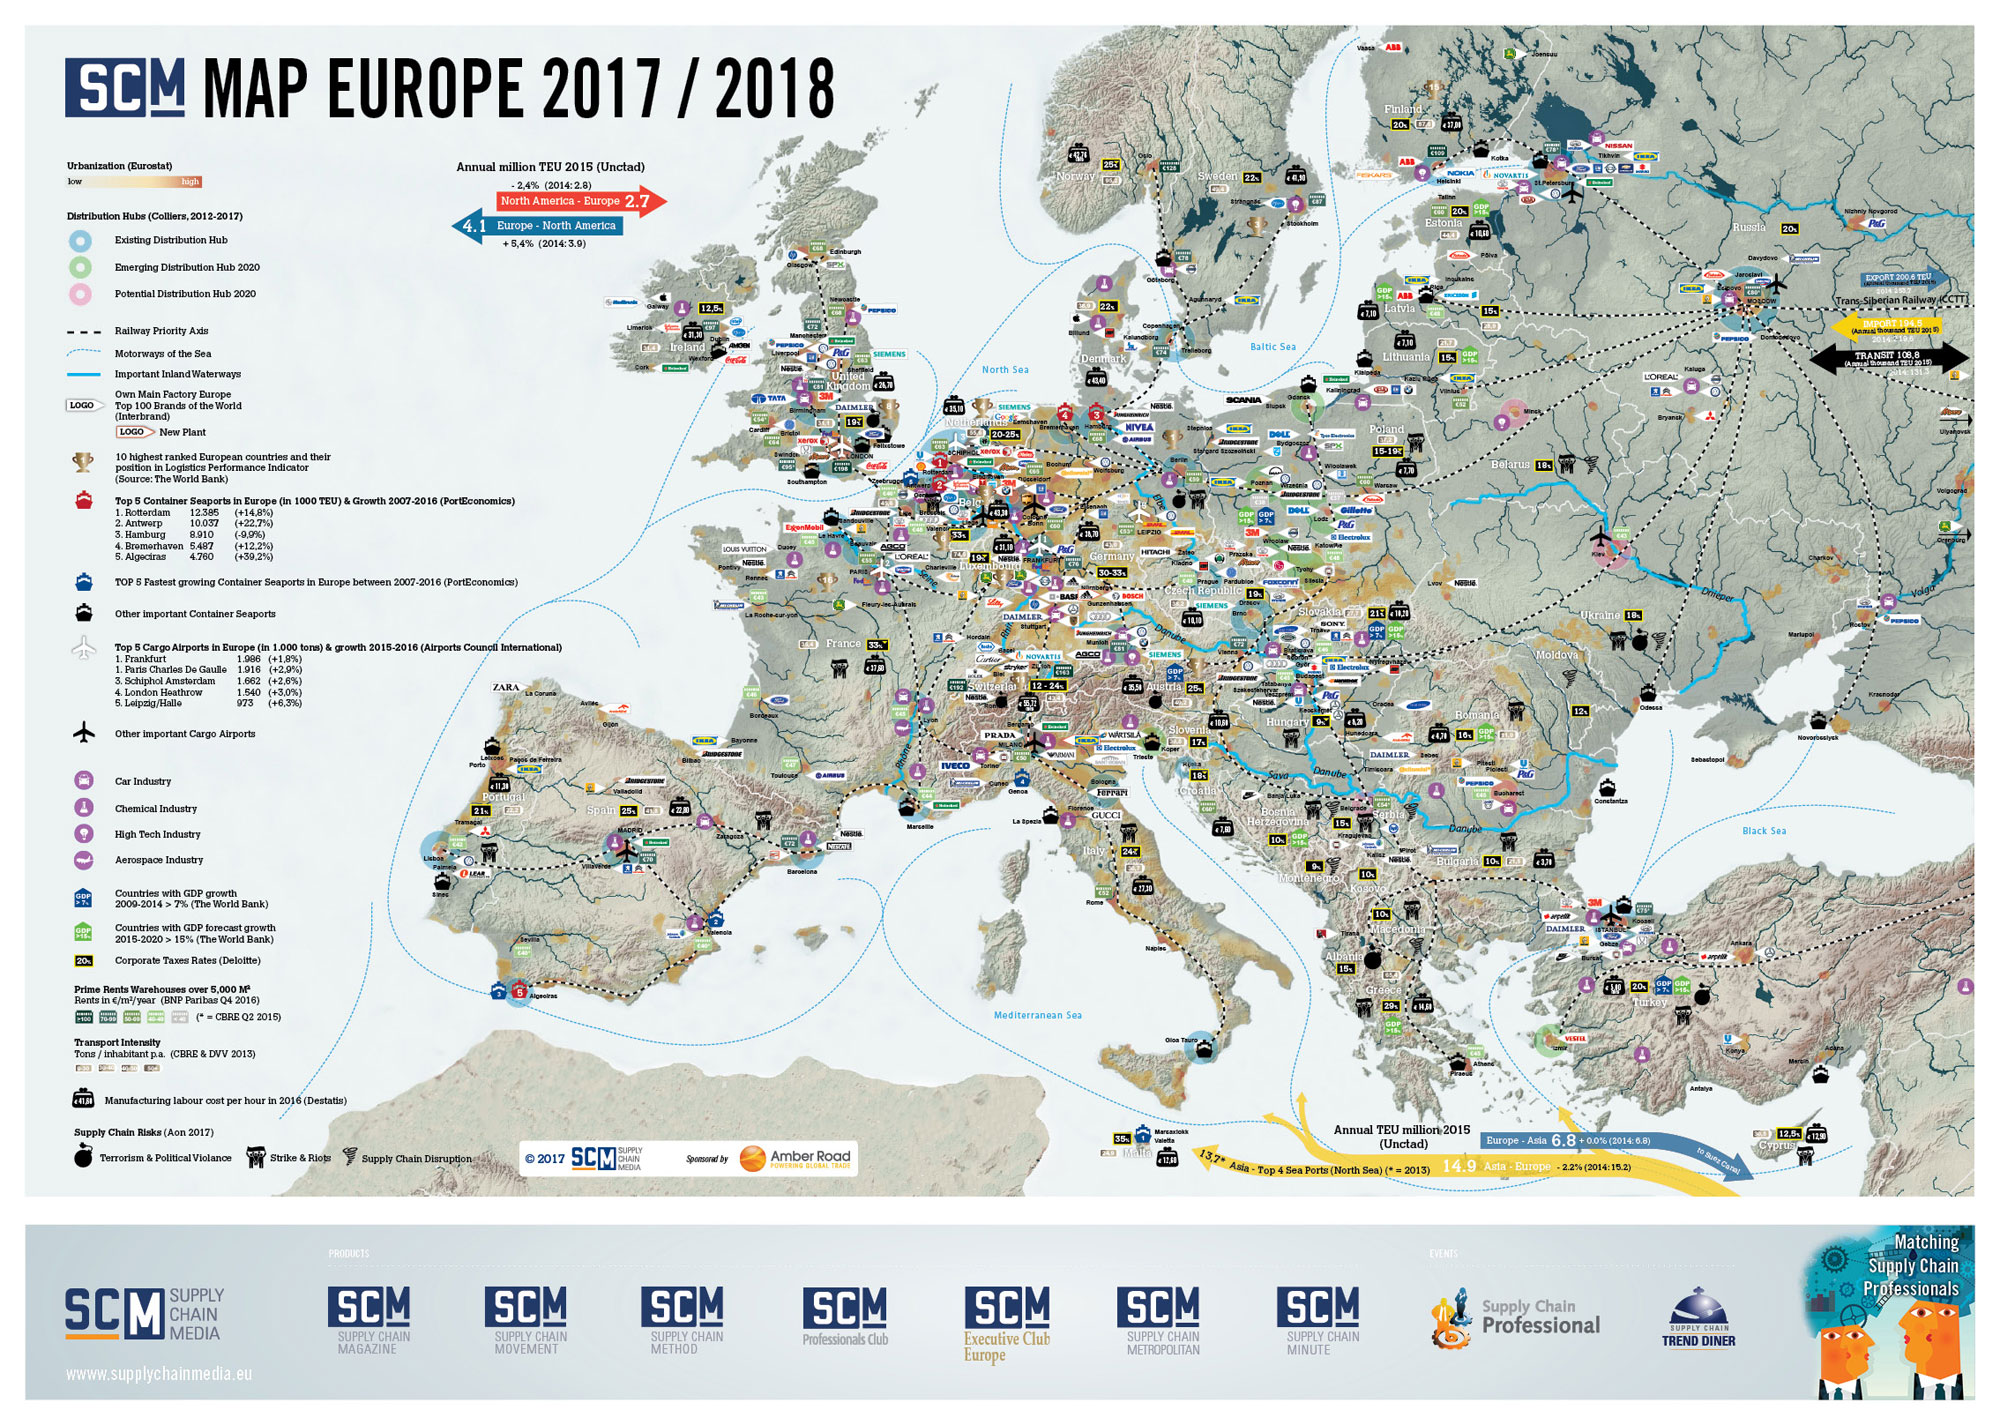 Europe map | Supply Chain Media